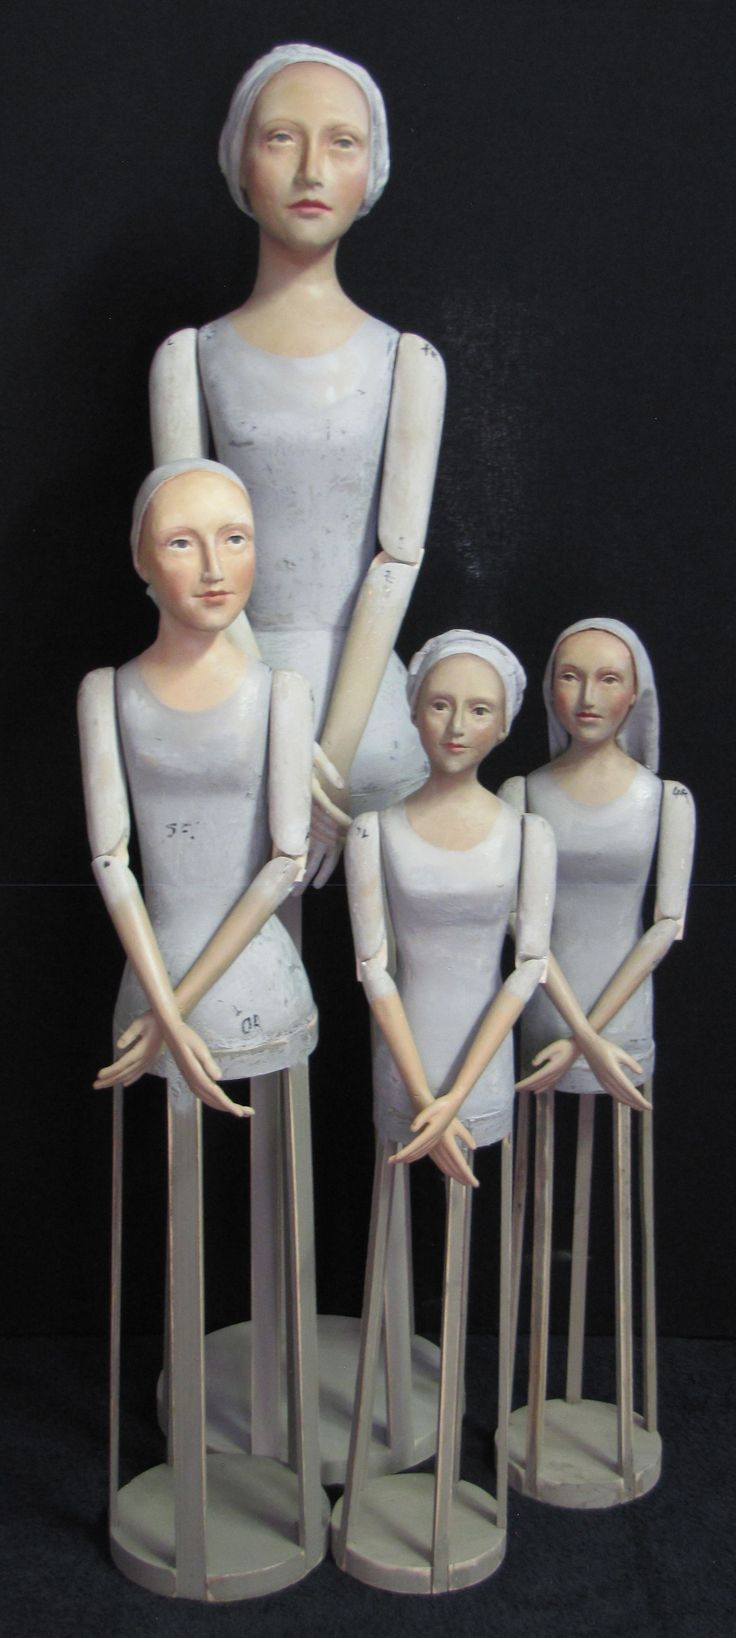 Grey series cage mannequins. The cage is a frame that would give support to a dressed mannequin